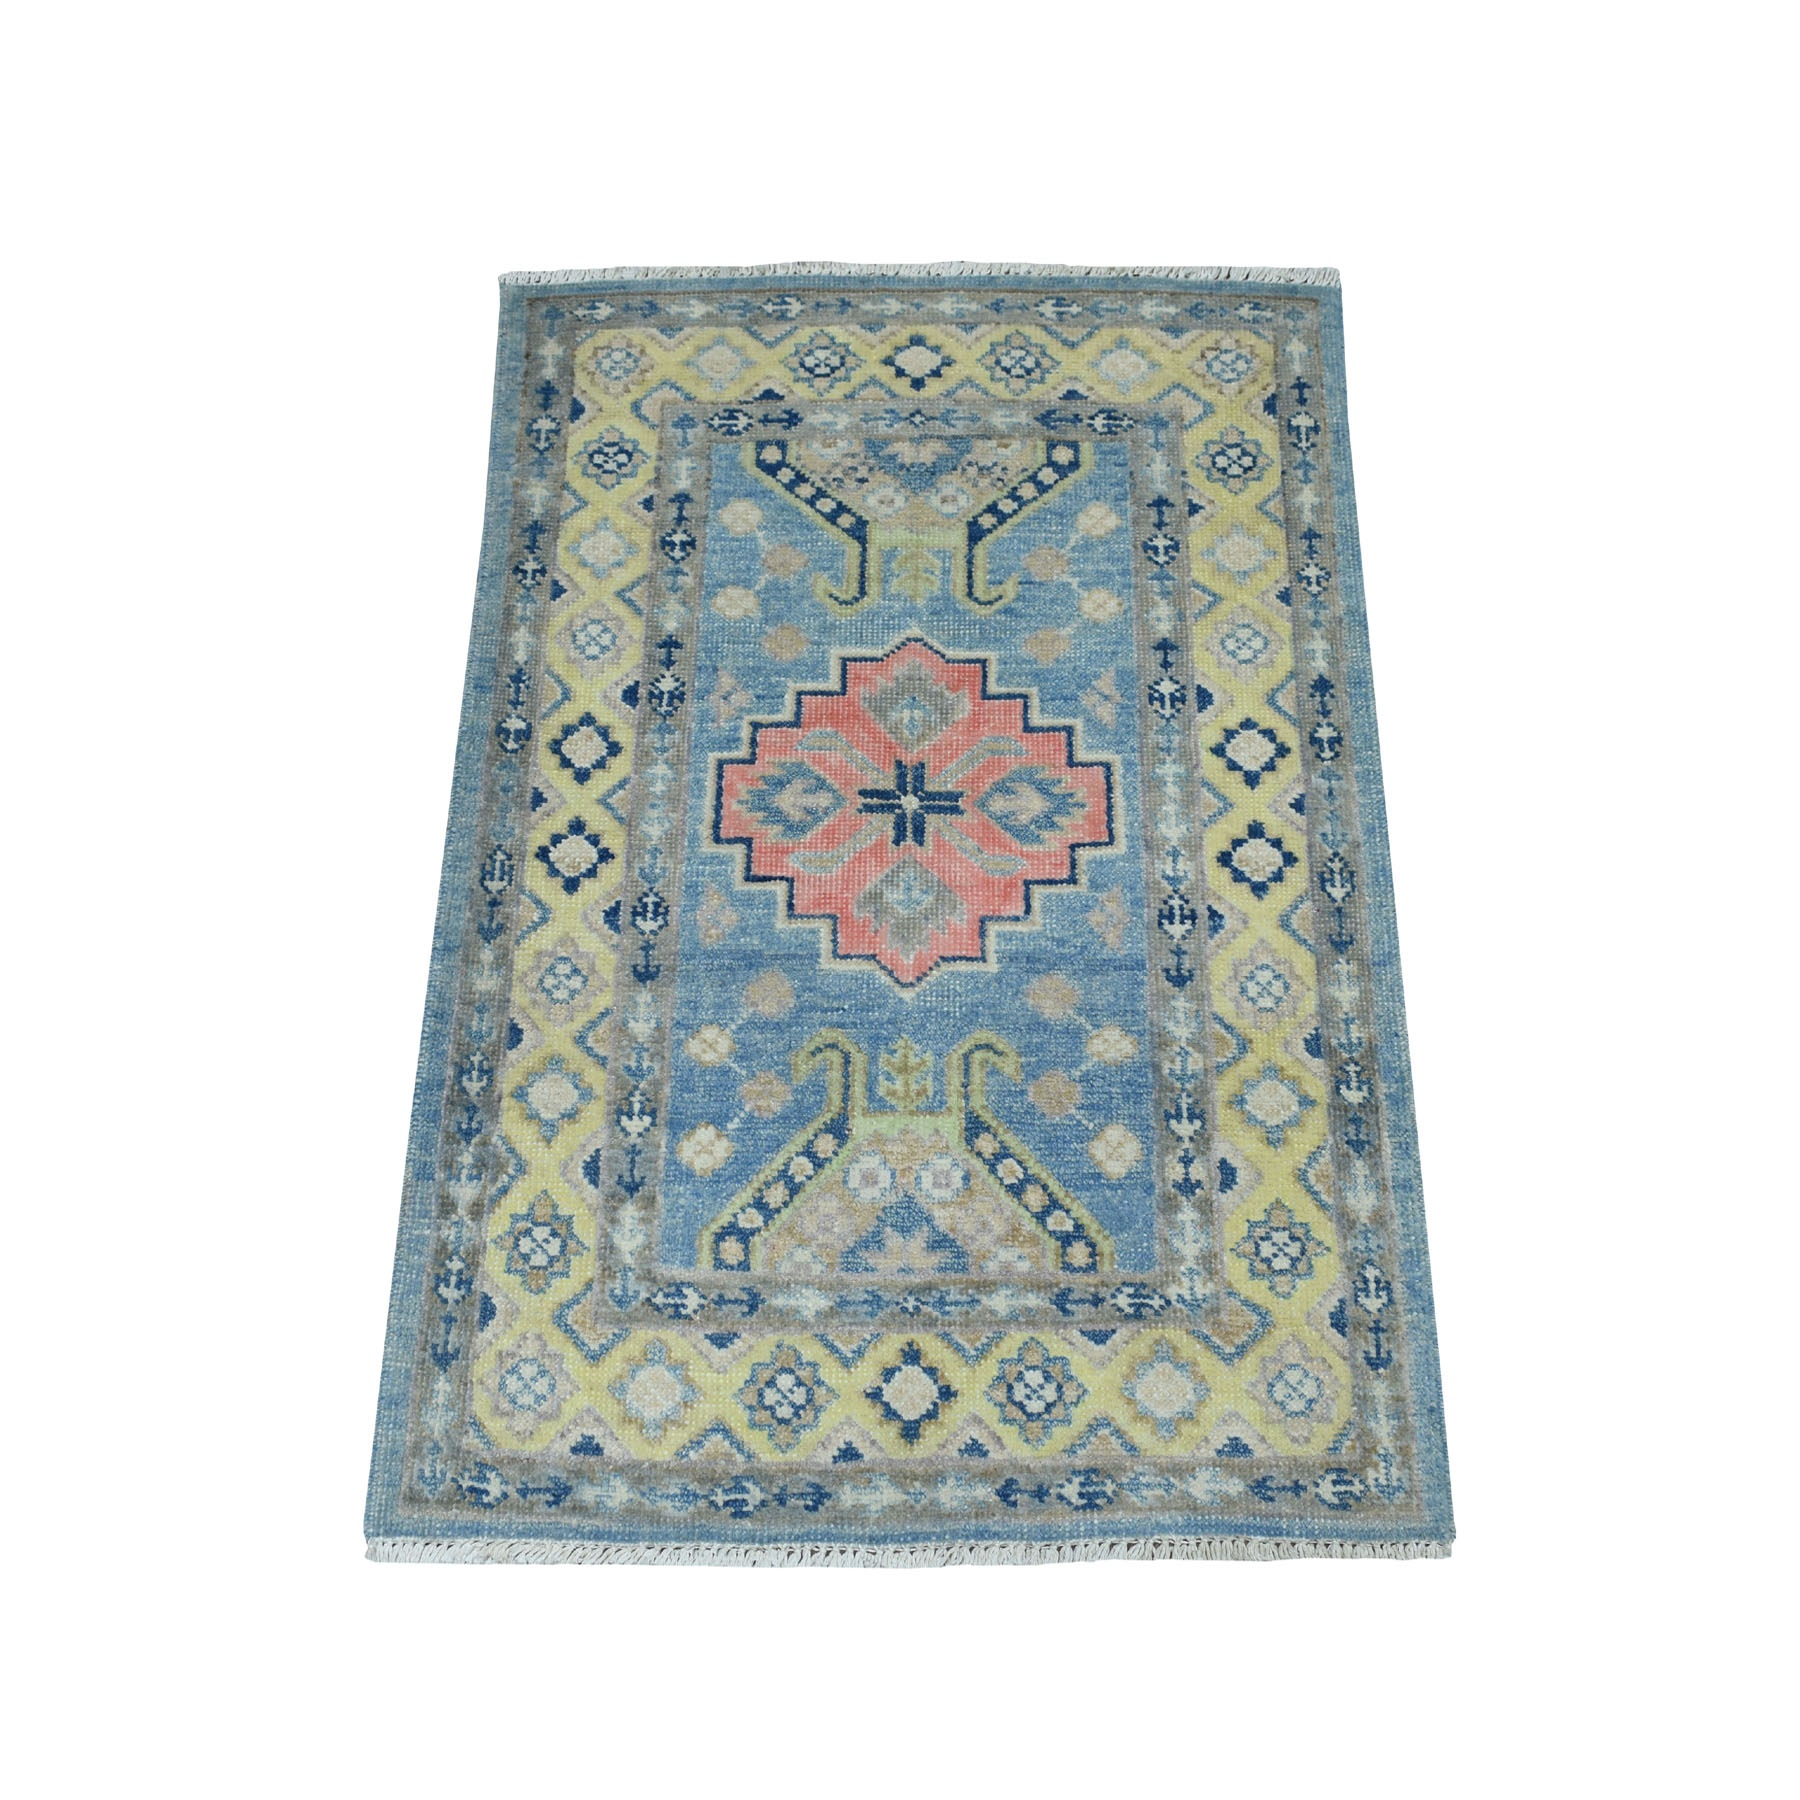 2'x3' Colorful Blue Fusion Kazak Pure Wool Hand Knotted Oriental Rug 52345